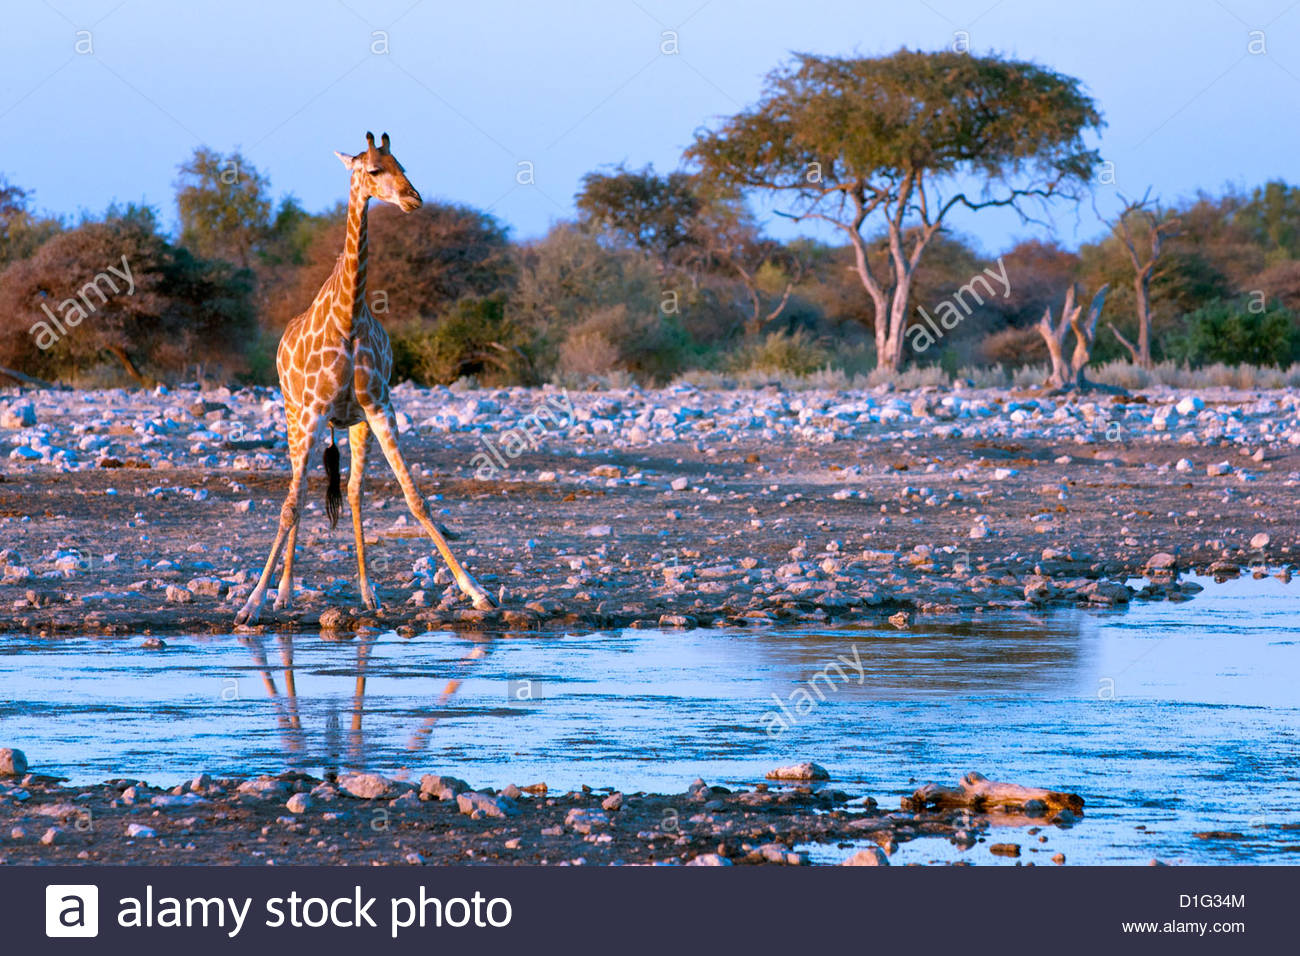 Girafe (Giraffa camelopardis), Namibie, Afrique Photo Stock